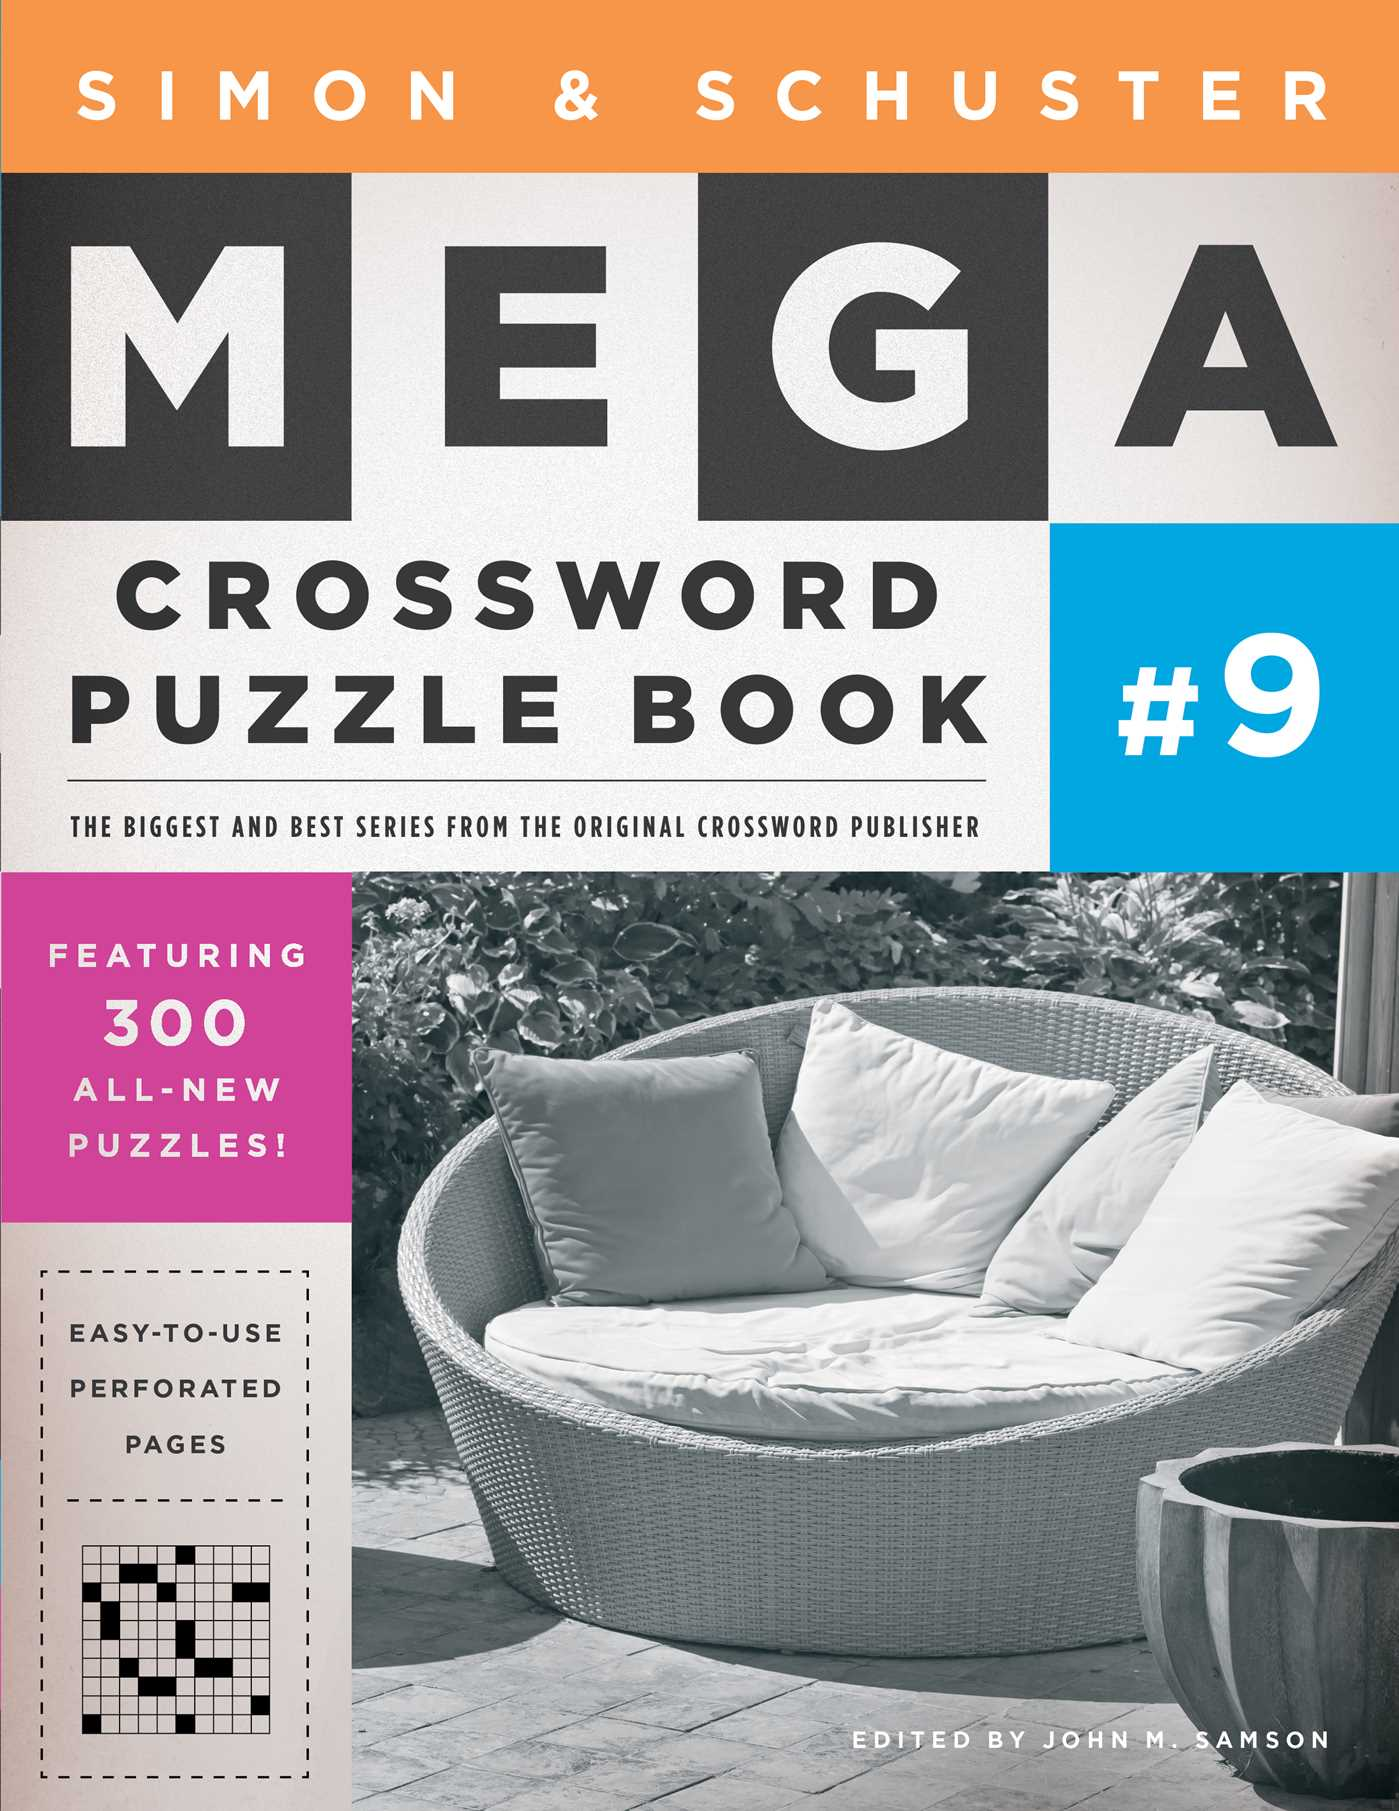 Simon schuster mega crossword puzzle book 9 9781439158104 hr